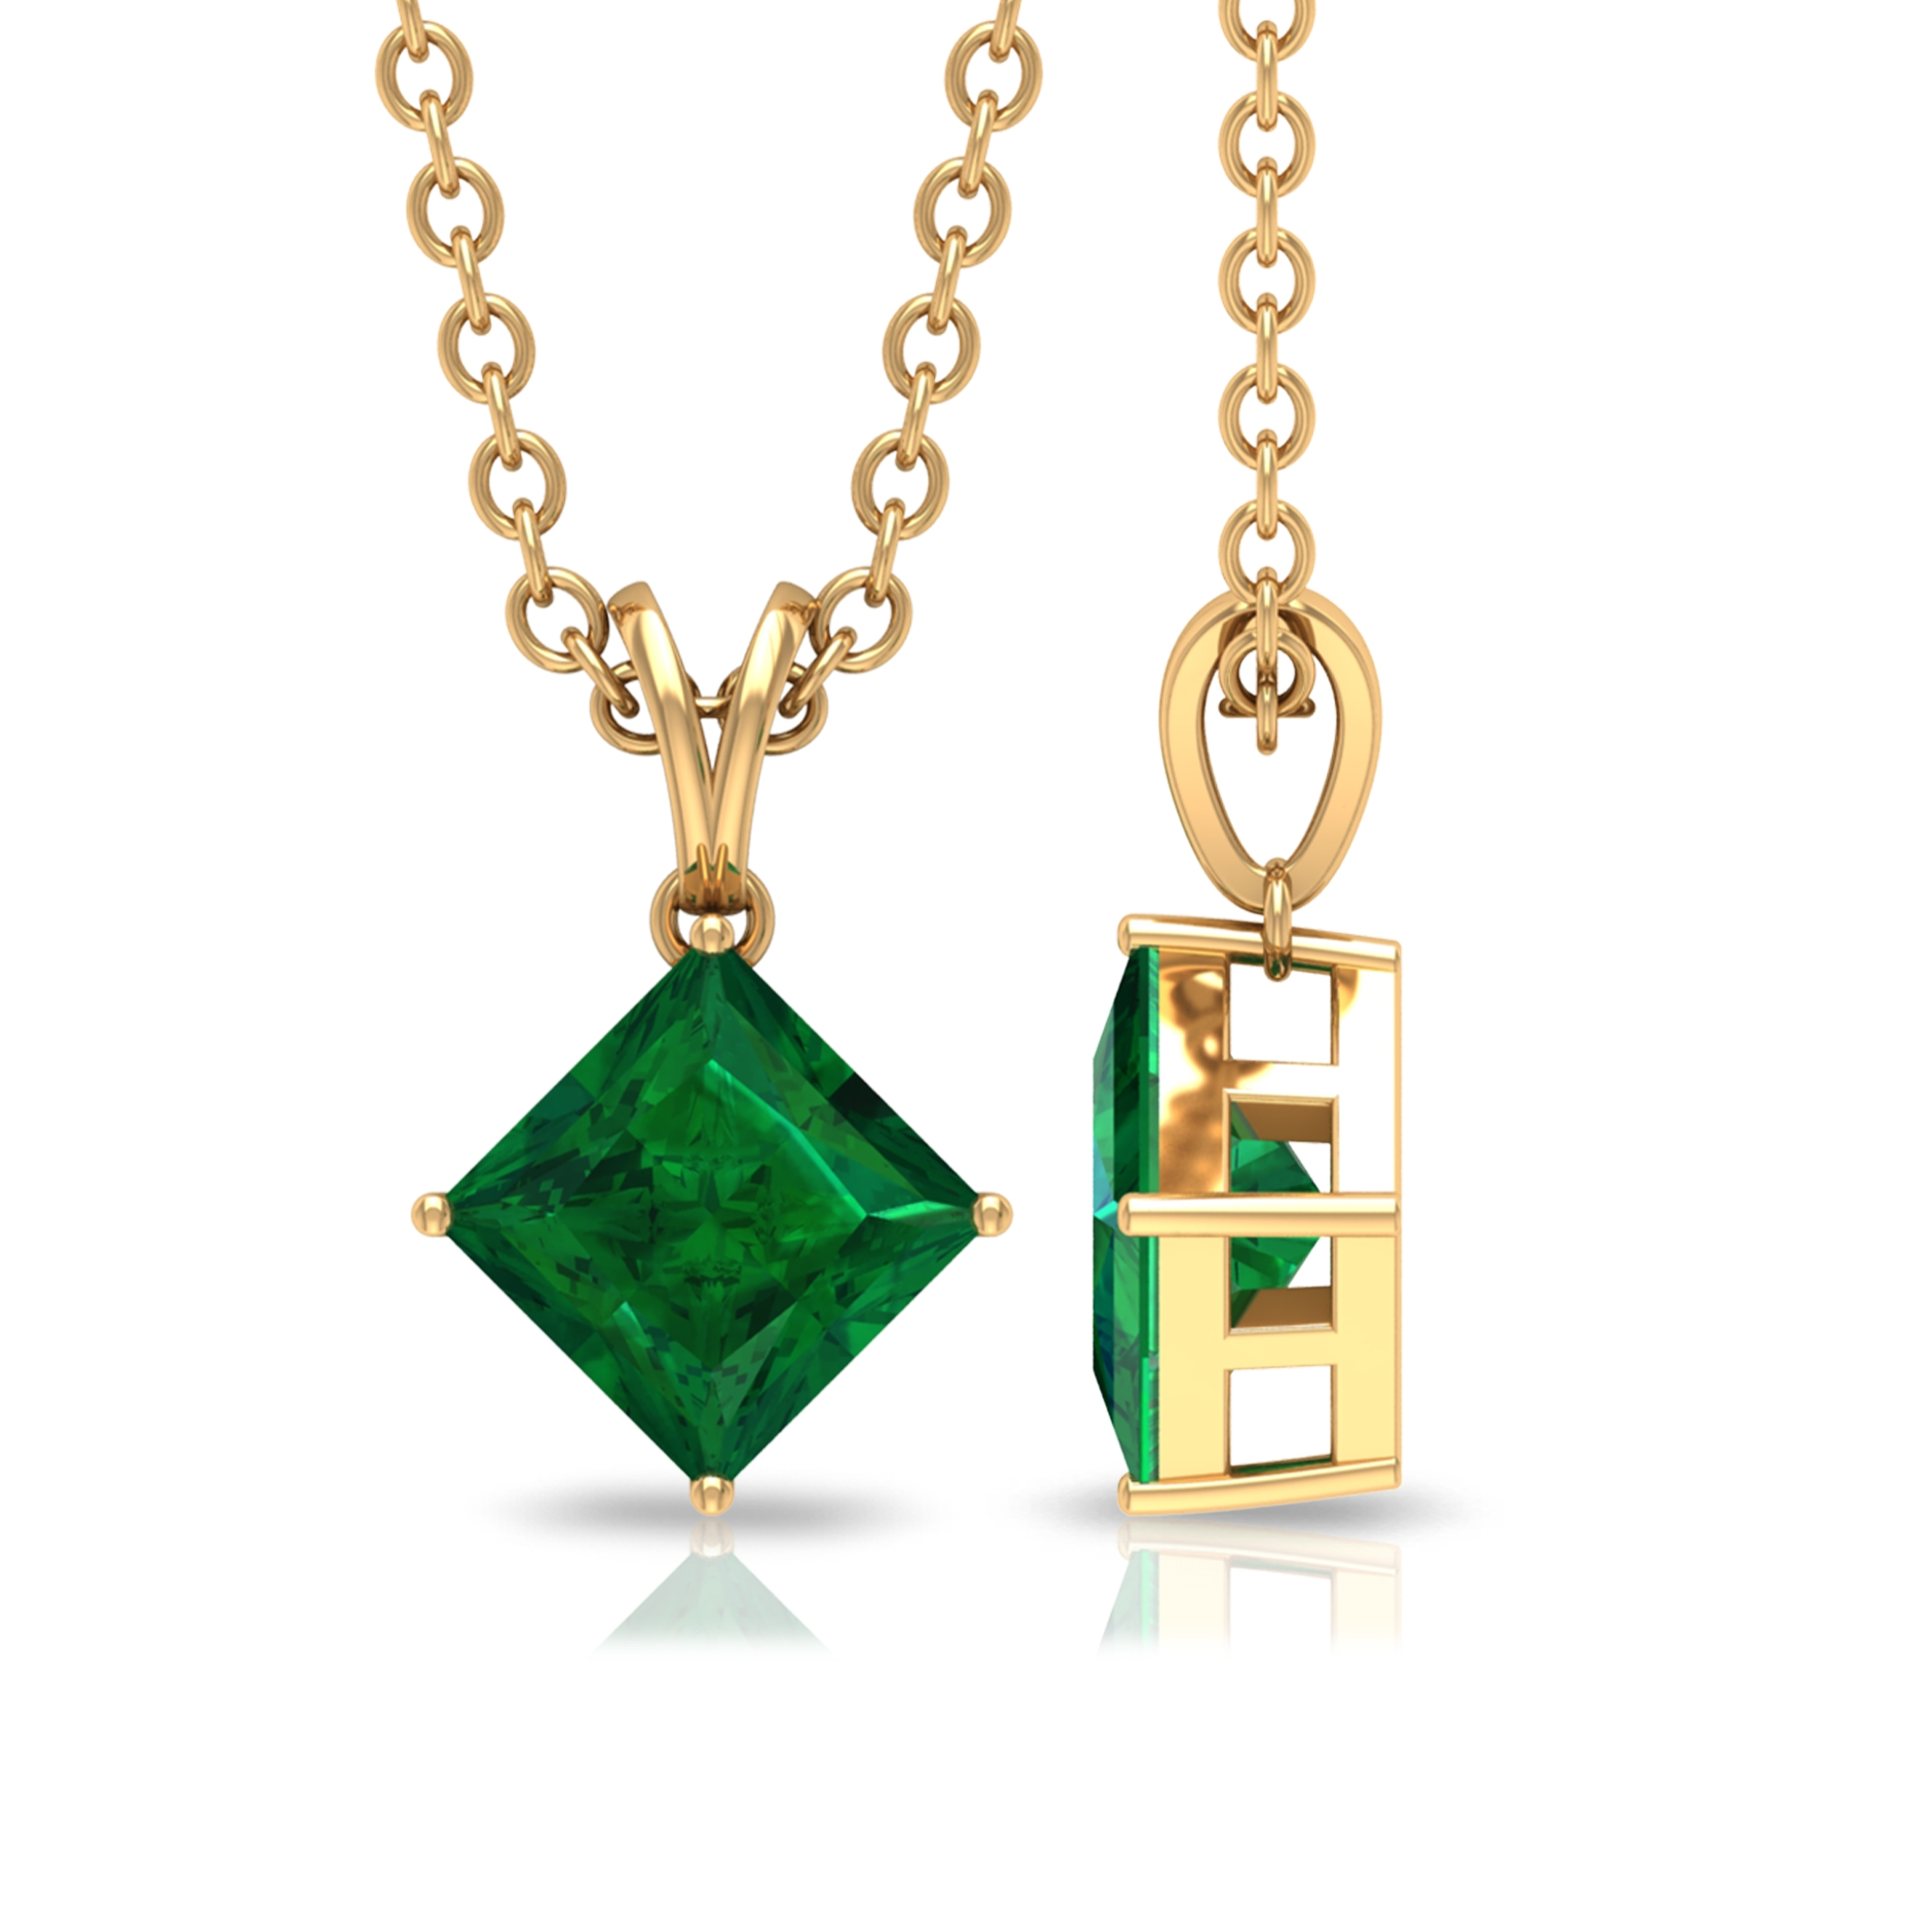 4.5 MM Princess Cut Emerald Solitaire Minimal Pendant in 4 Prong Setting with Rabbit Ear Bail